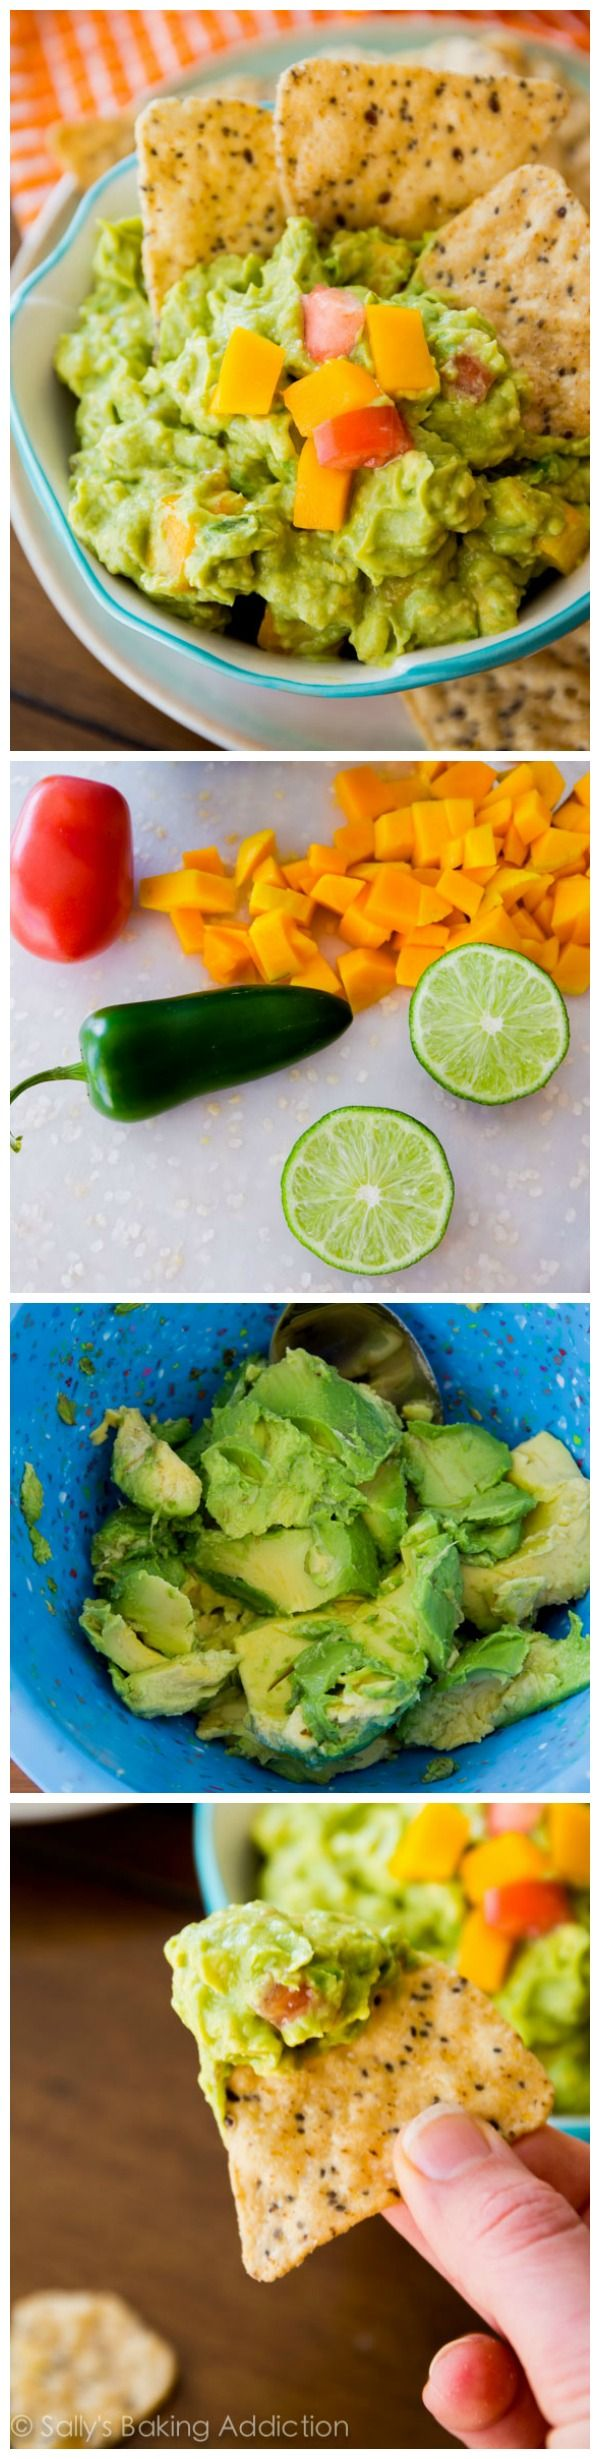 The best! Classic Guacamole gets a refreshing kick with the addition of mango. Super chunky, sweet, creamy, and you can control the spice!